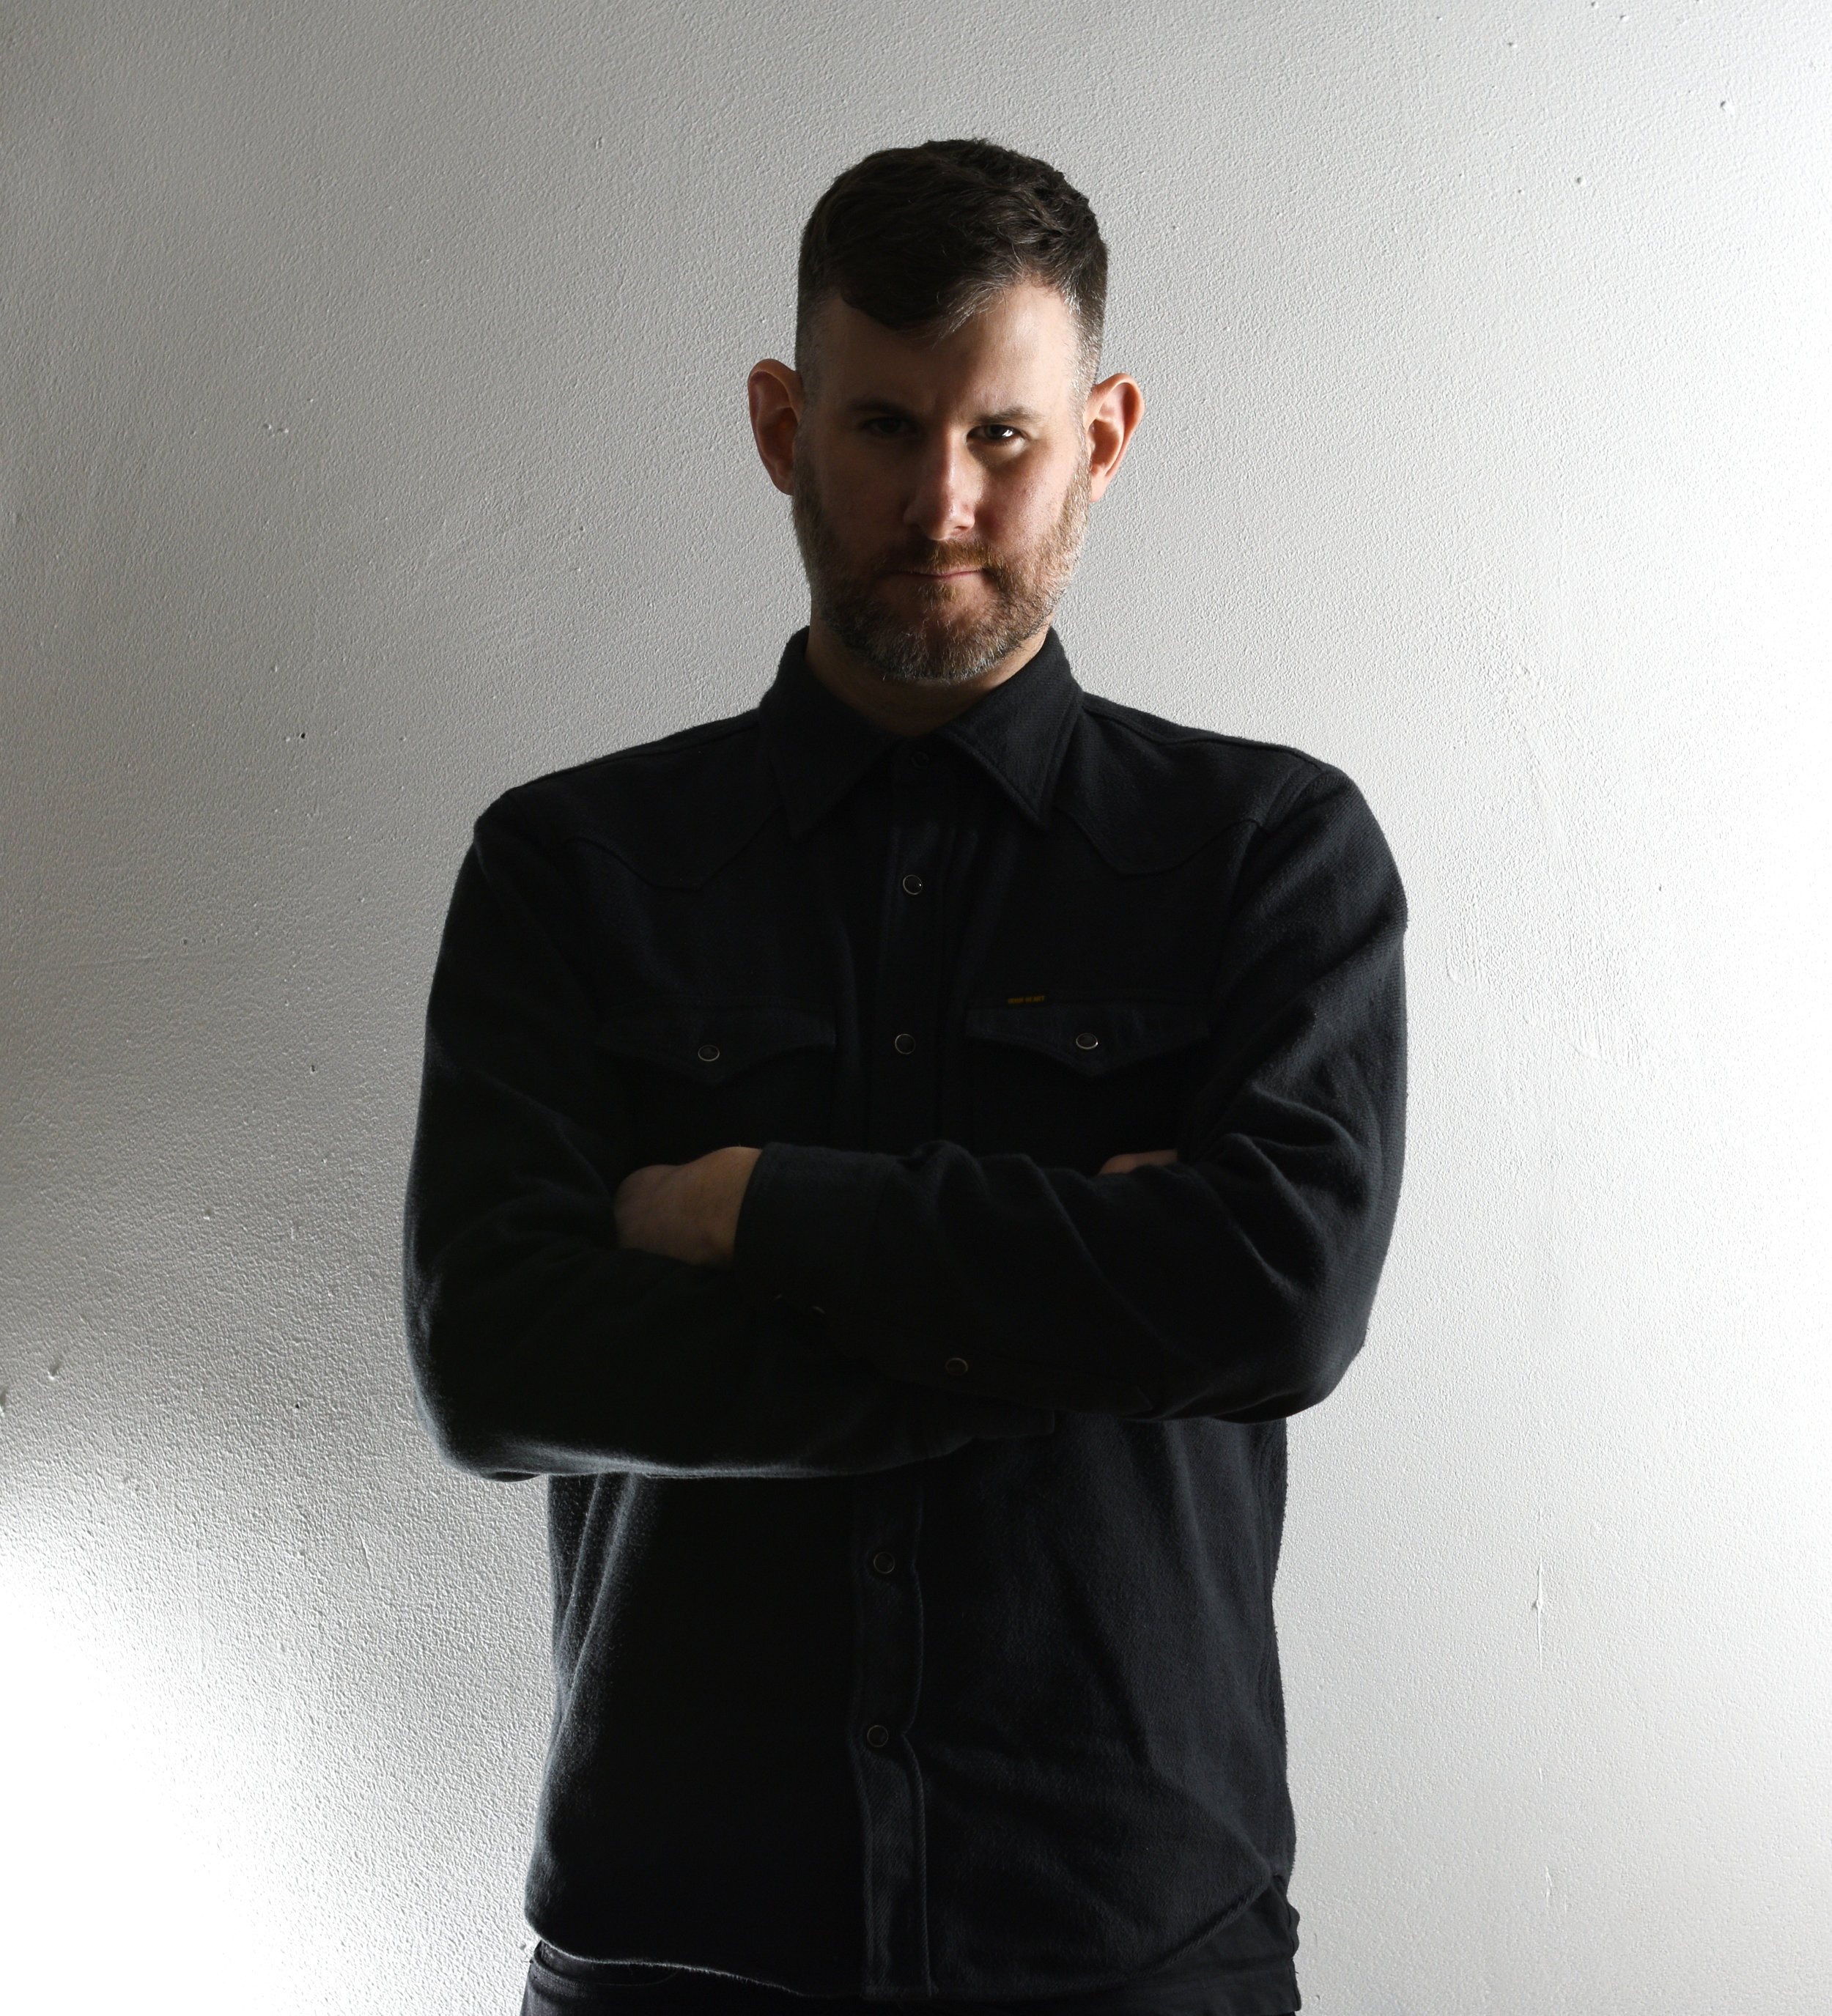 "Matrixxman - Matrixxman is the alter-ego of Charles McCloud Duff. Although he's known primarily for his work in the techno realm as of late, his musical range extends well beyond the confines of dance music. Initially he honed his skills producing extensively for some of the west coast's most notorious figures in gangster rap; YG and Ty$. Several years later he ultimately settled into his groove with something straddling the divide between Chicago House and Detroit Techno. Although truth be told, it was nothing new to him. Word of his diverse production chops spread within the industry culminating in his recent work with Depeche Mode on their album ""Spirit""."